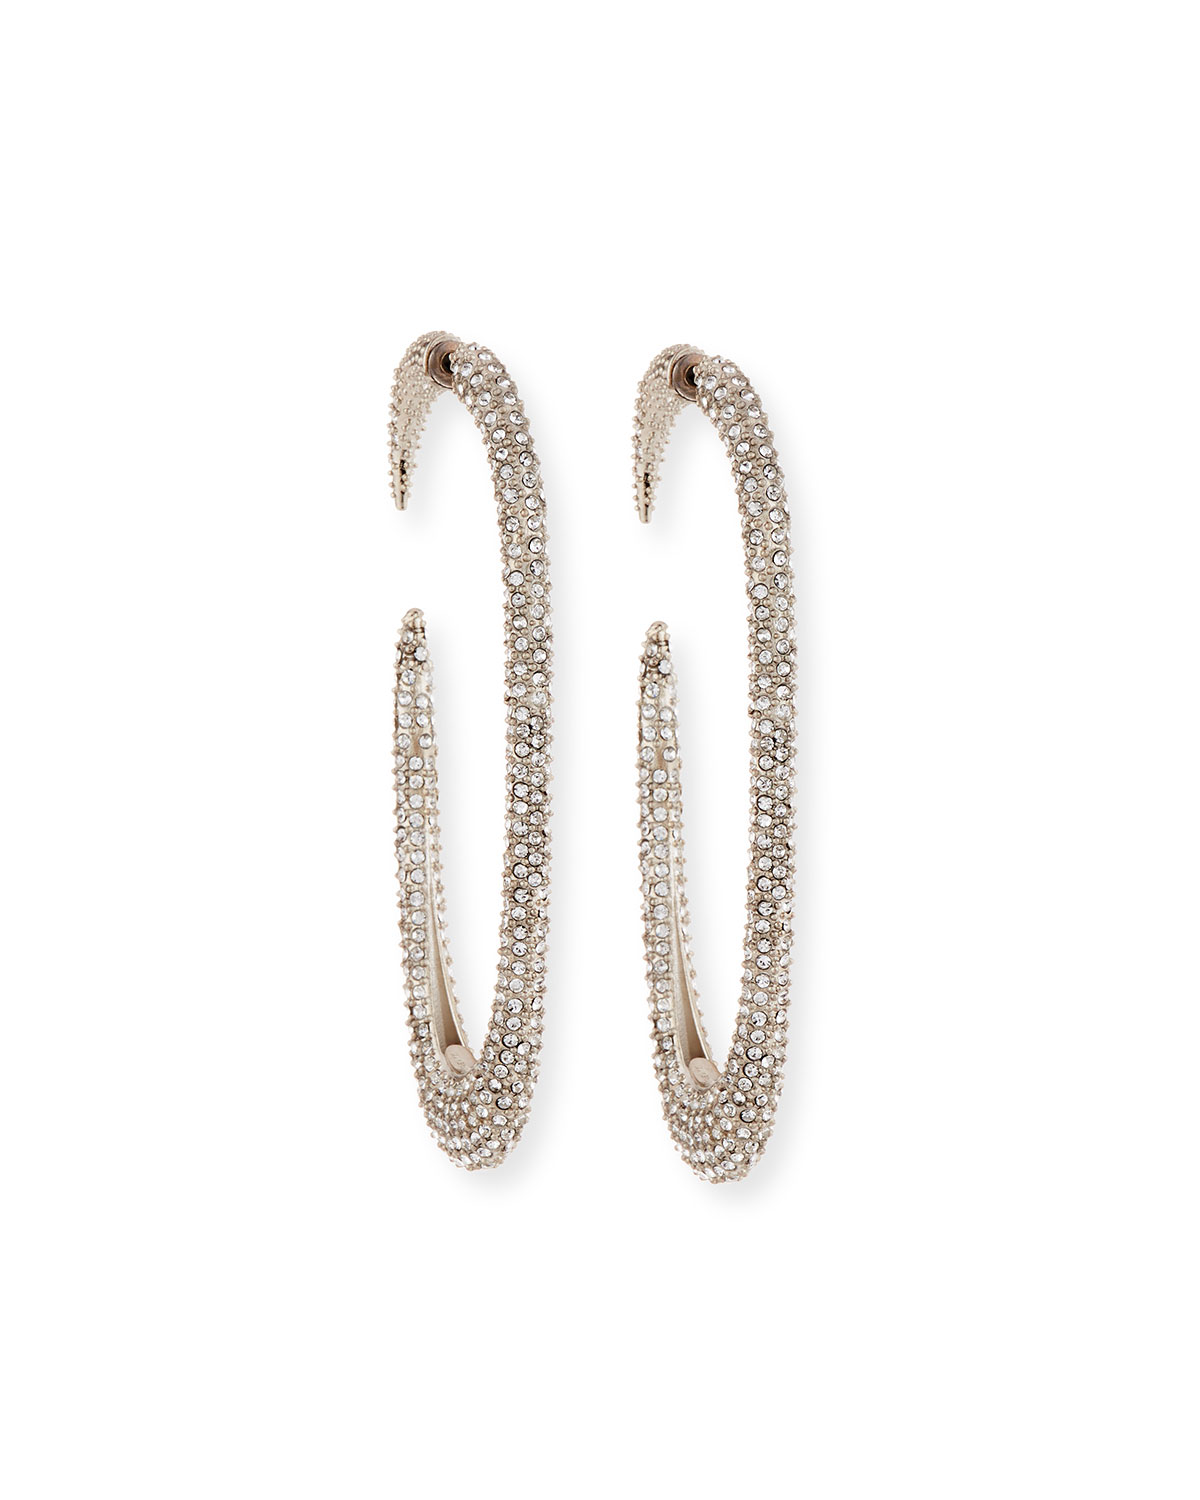 e6c6cdabd7e4 Saint Laurent Large Crystal Hoop Earrings